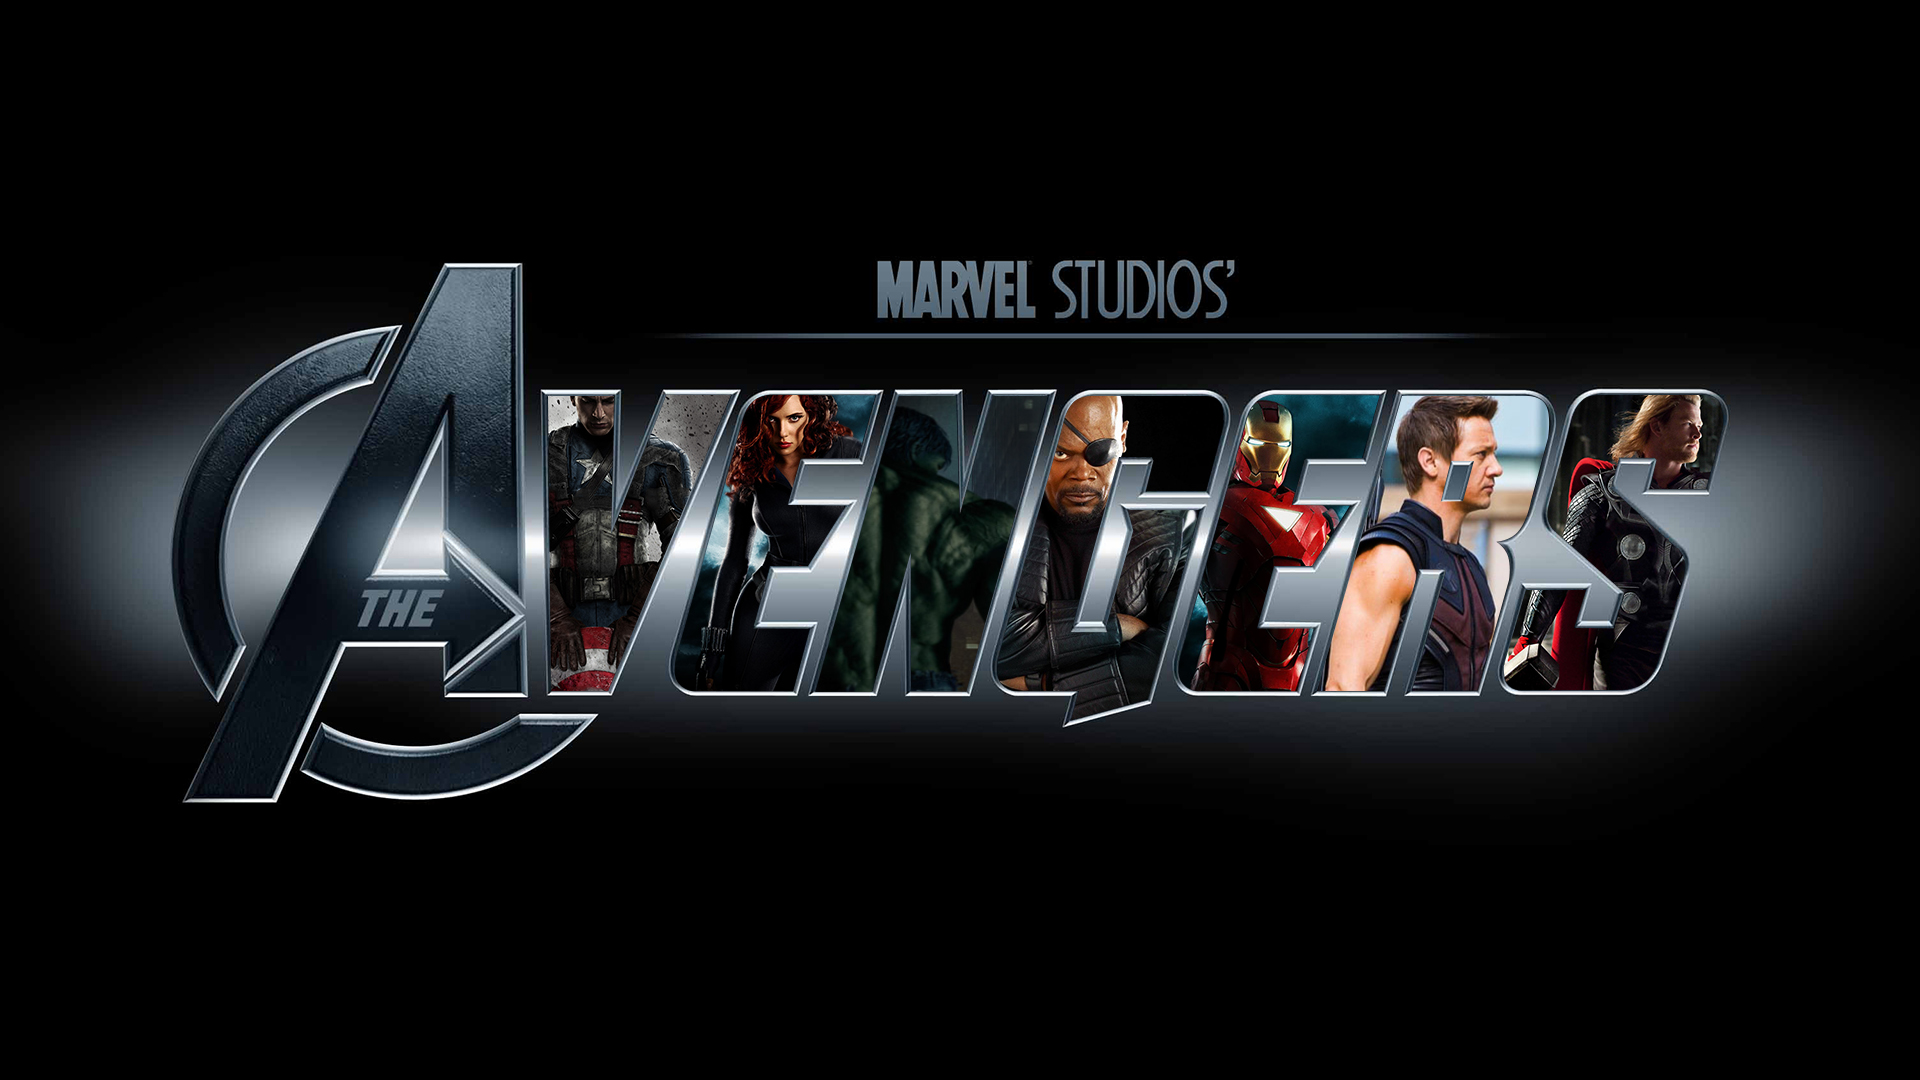 Best Avengers Wallpaper for Desktop Wide Screen Wallpaper 1080p2K 1920x1080